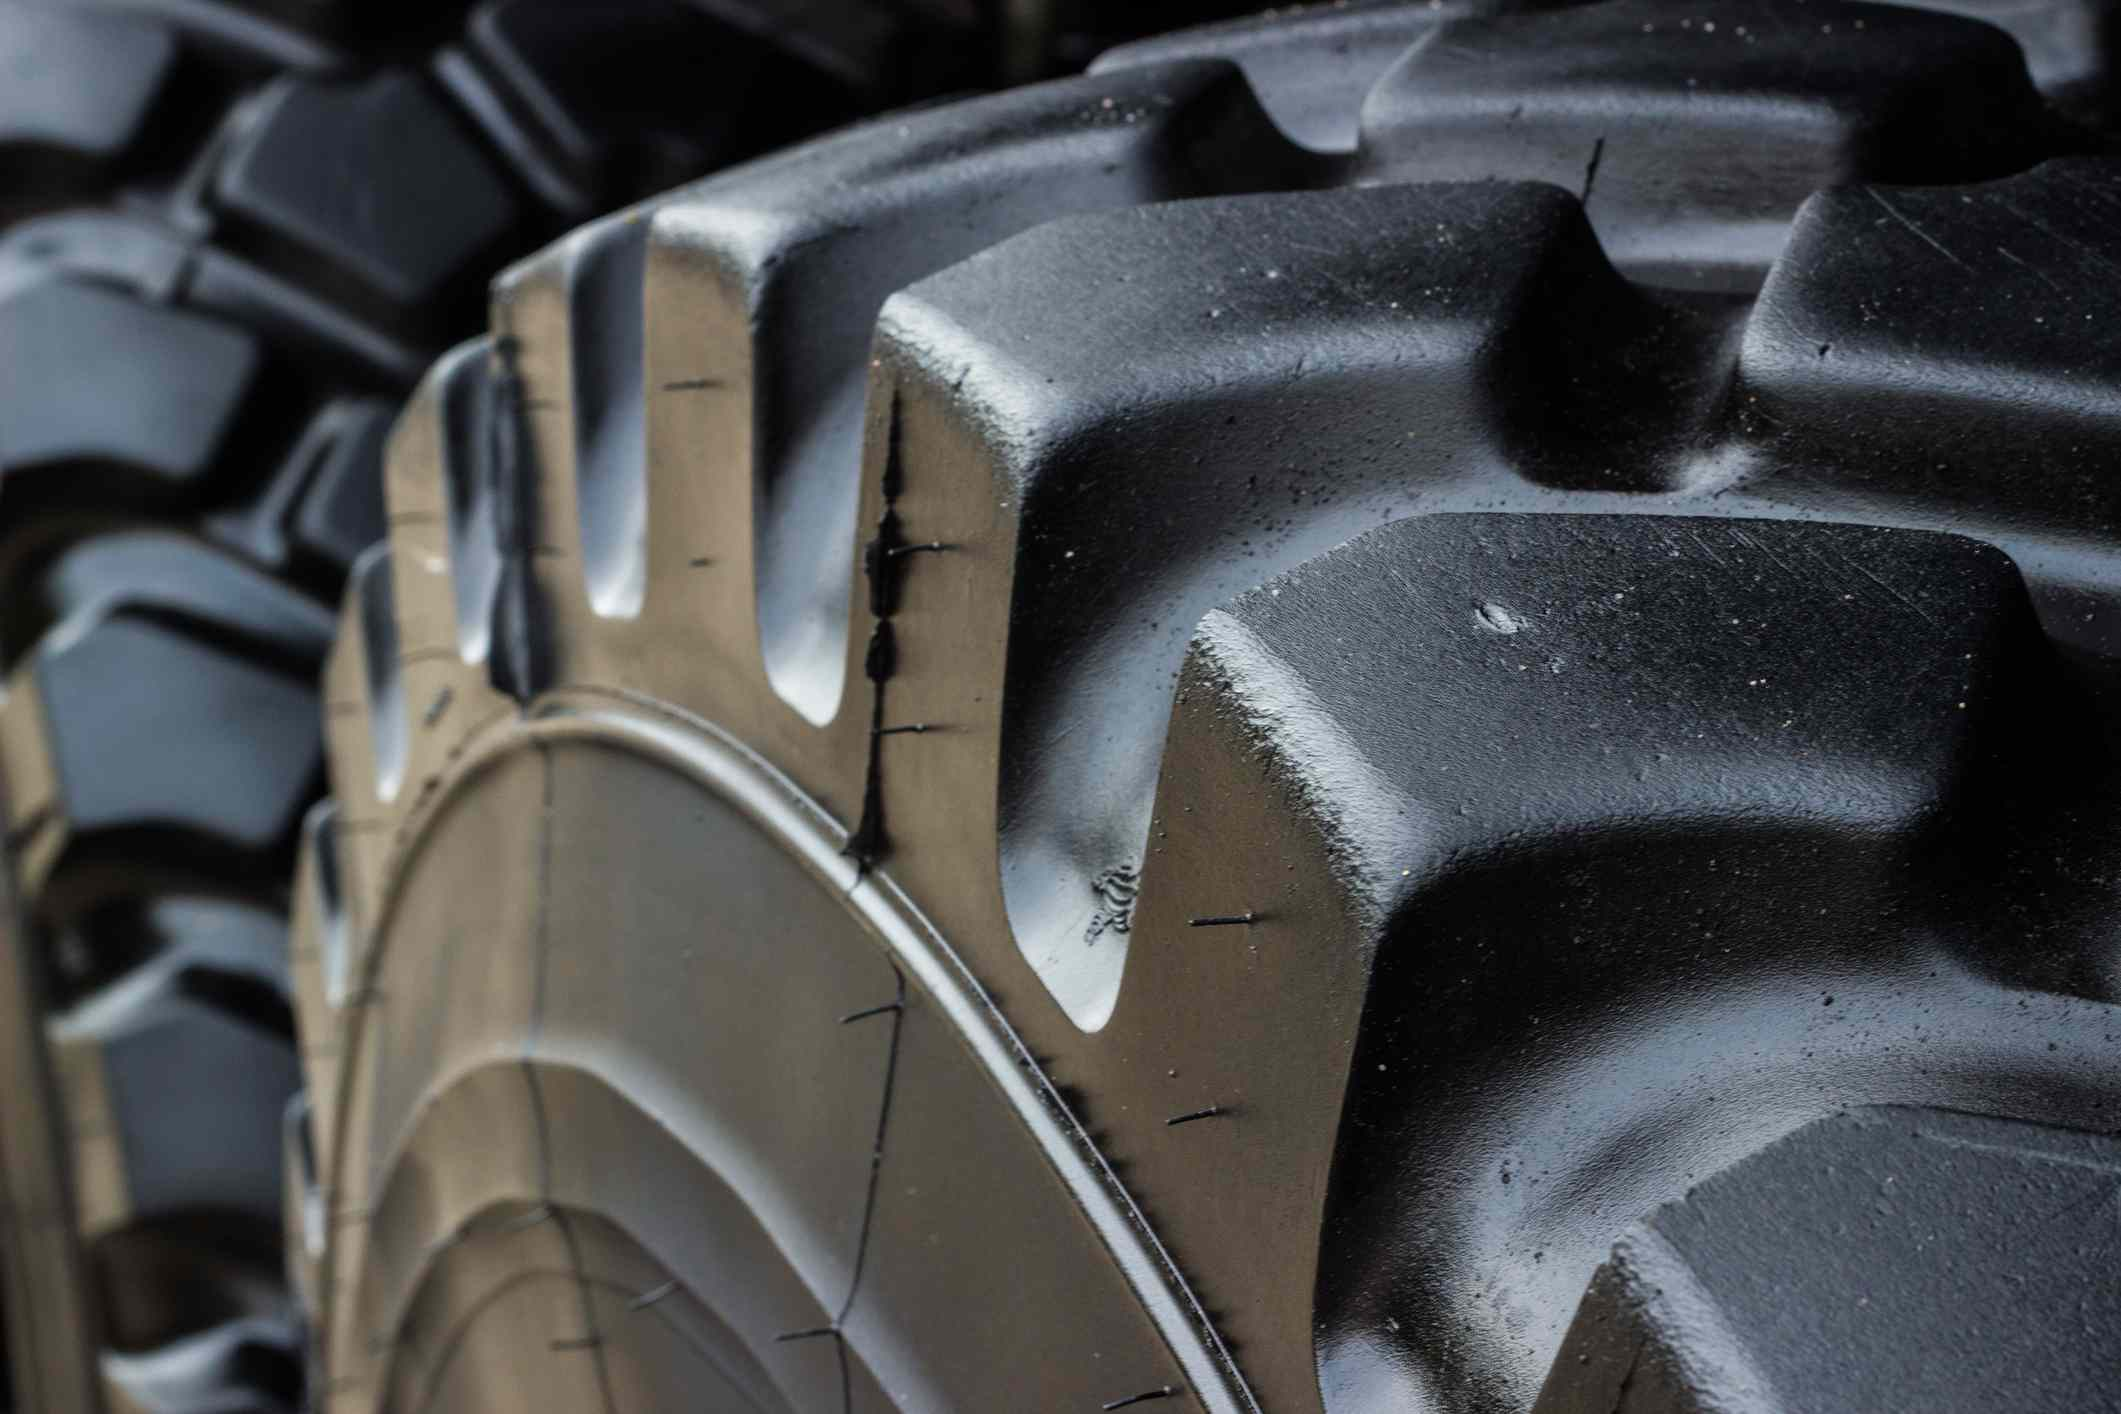 Close up of black rubber tires on military vehicle.